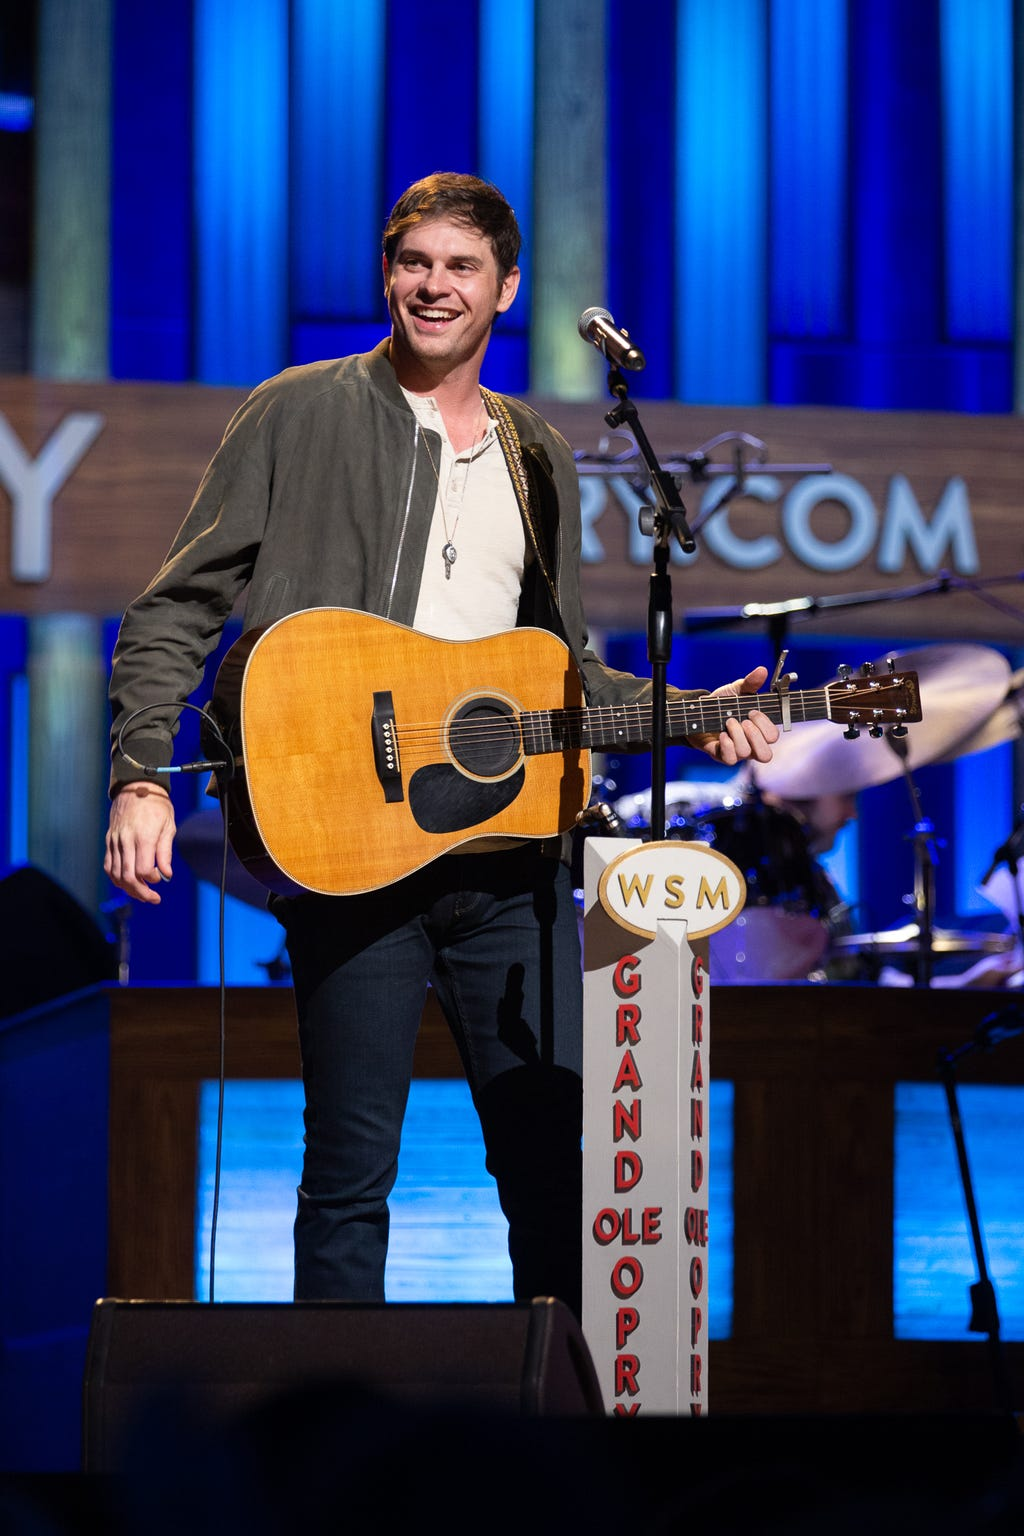 Matt Stell makes his Grand Ole Opry debut April 27.